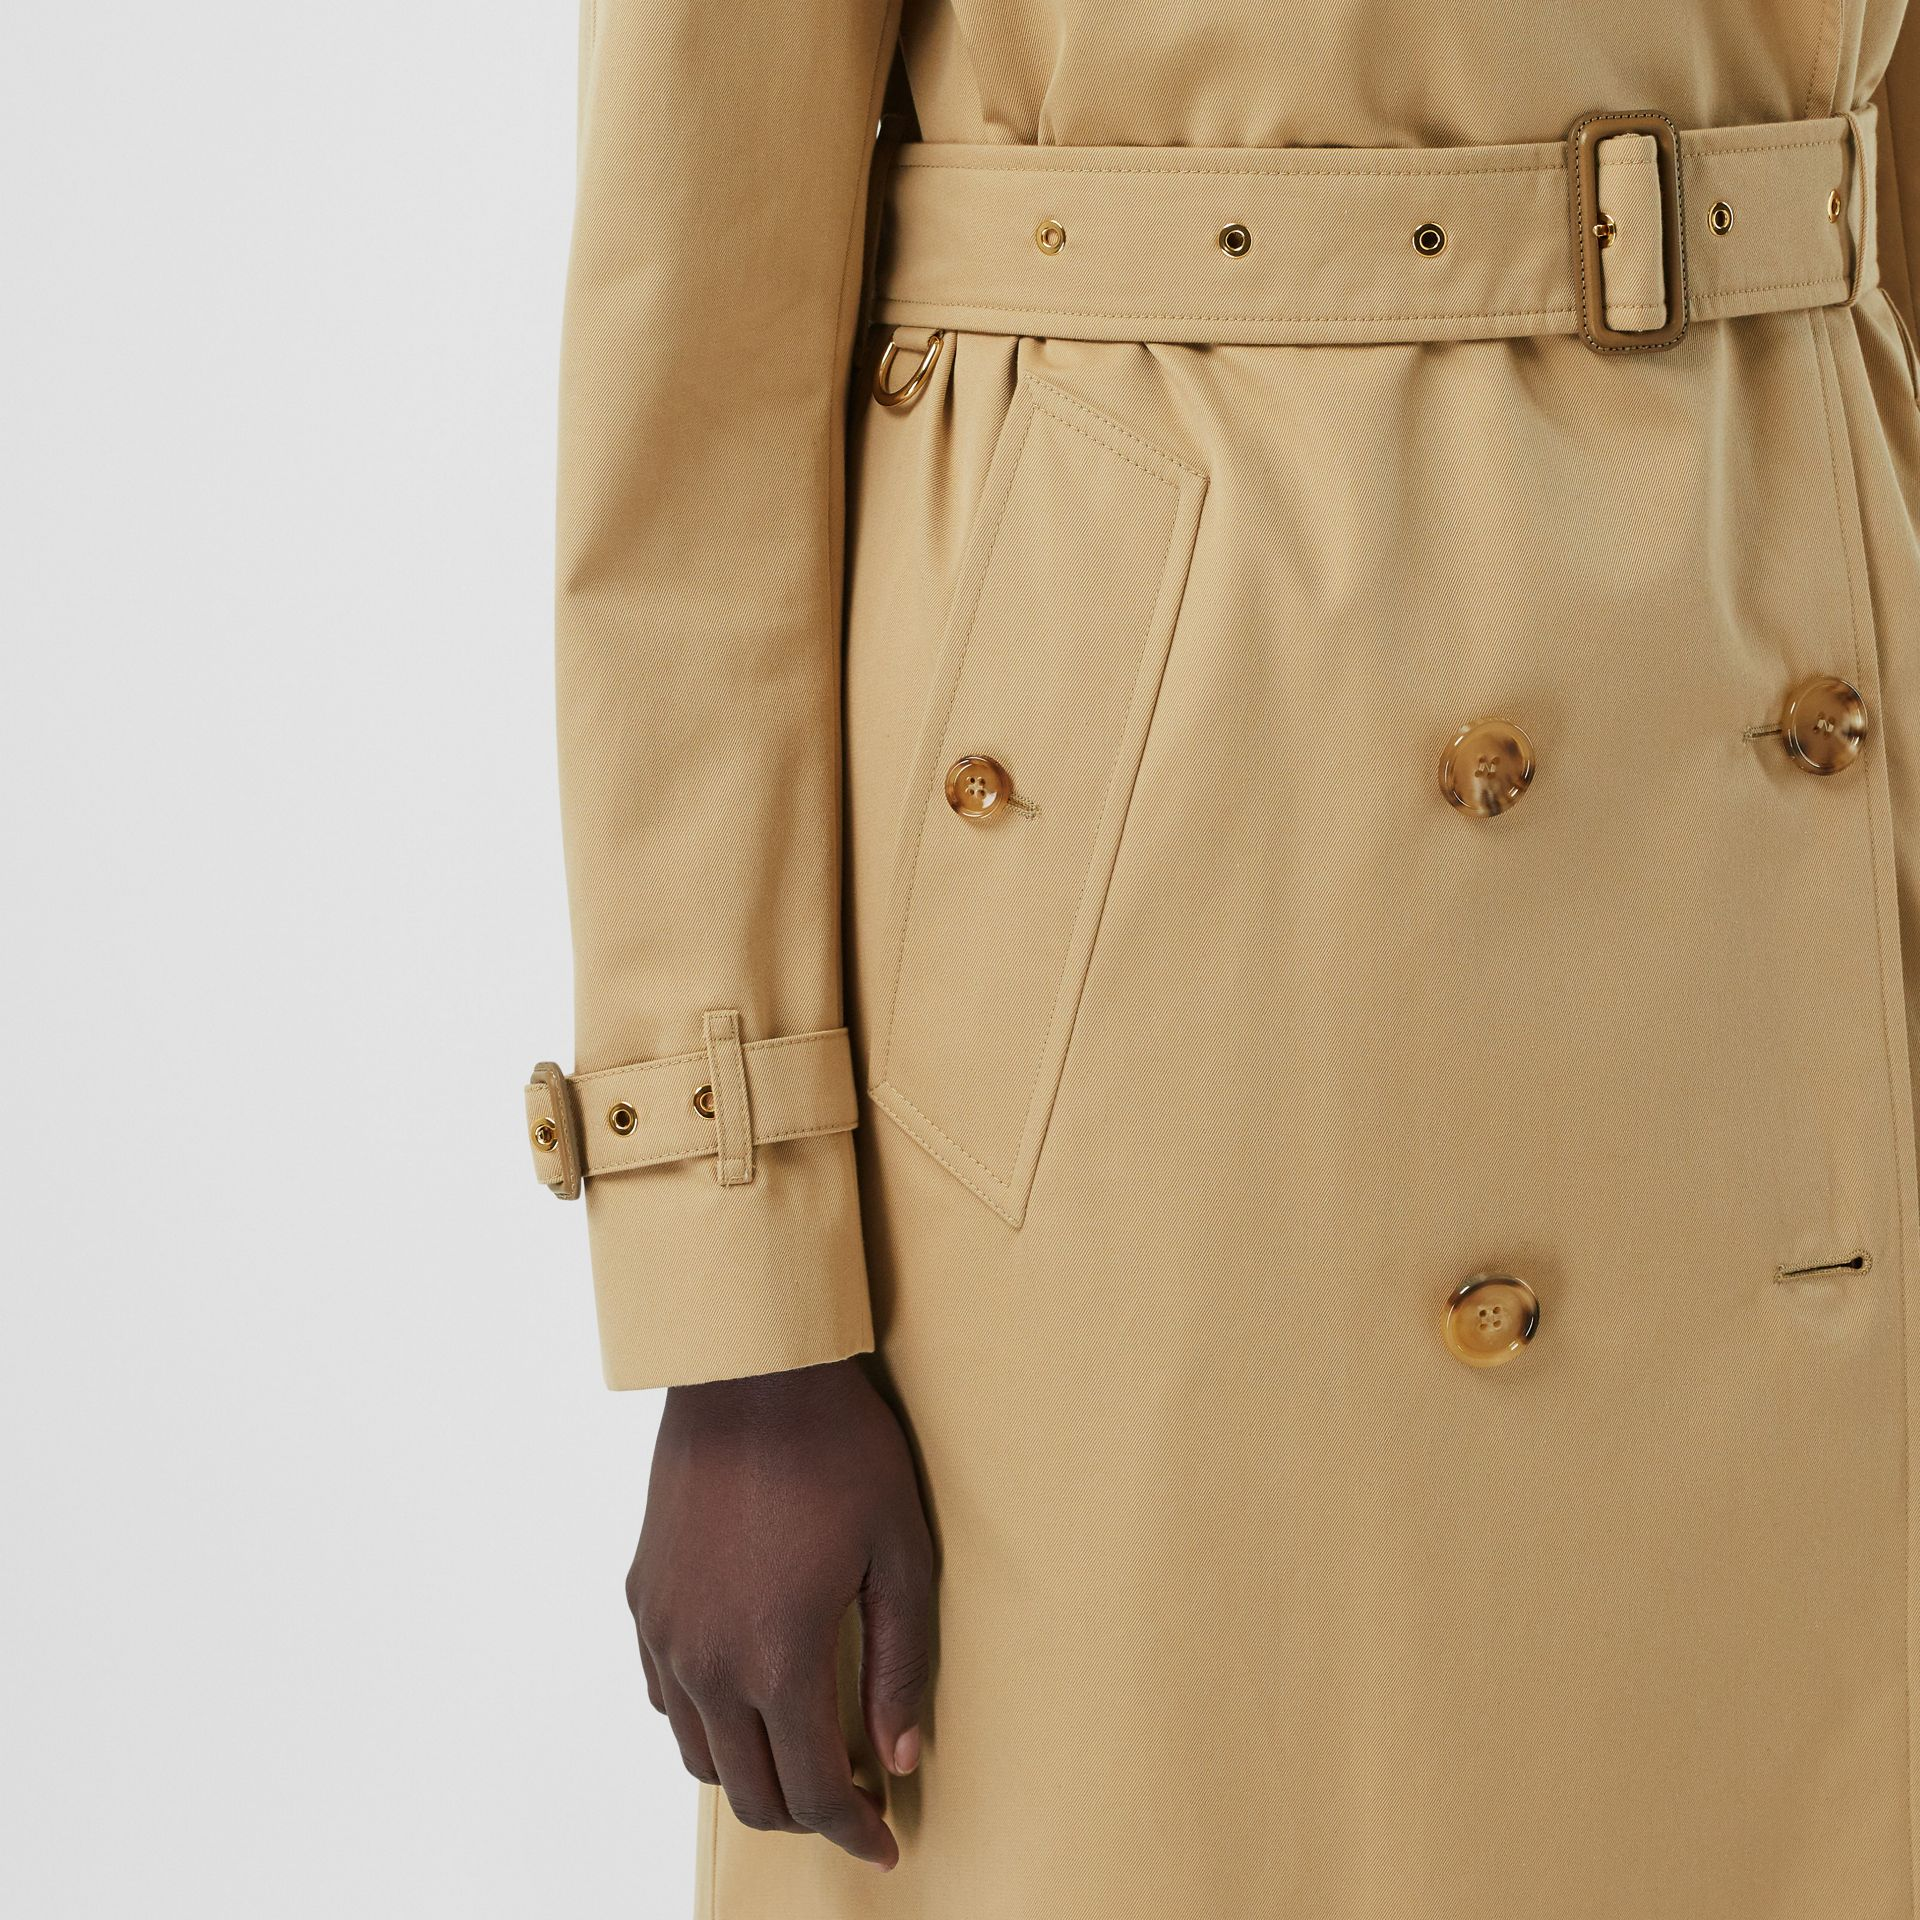 Archive Scarf Print-lined Trench Coat - Women | Burberry - gallery image 4